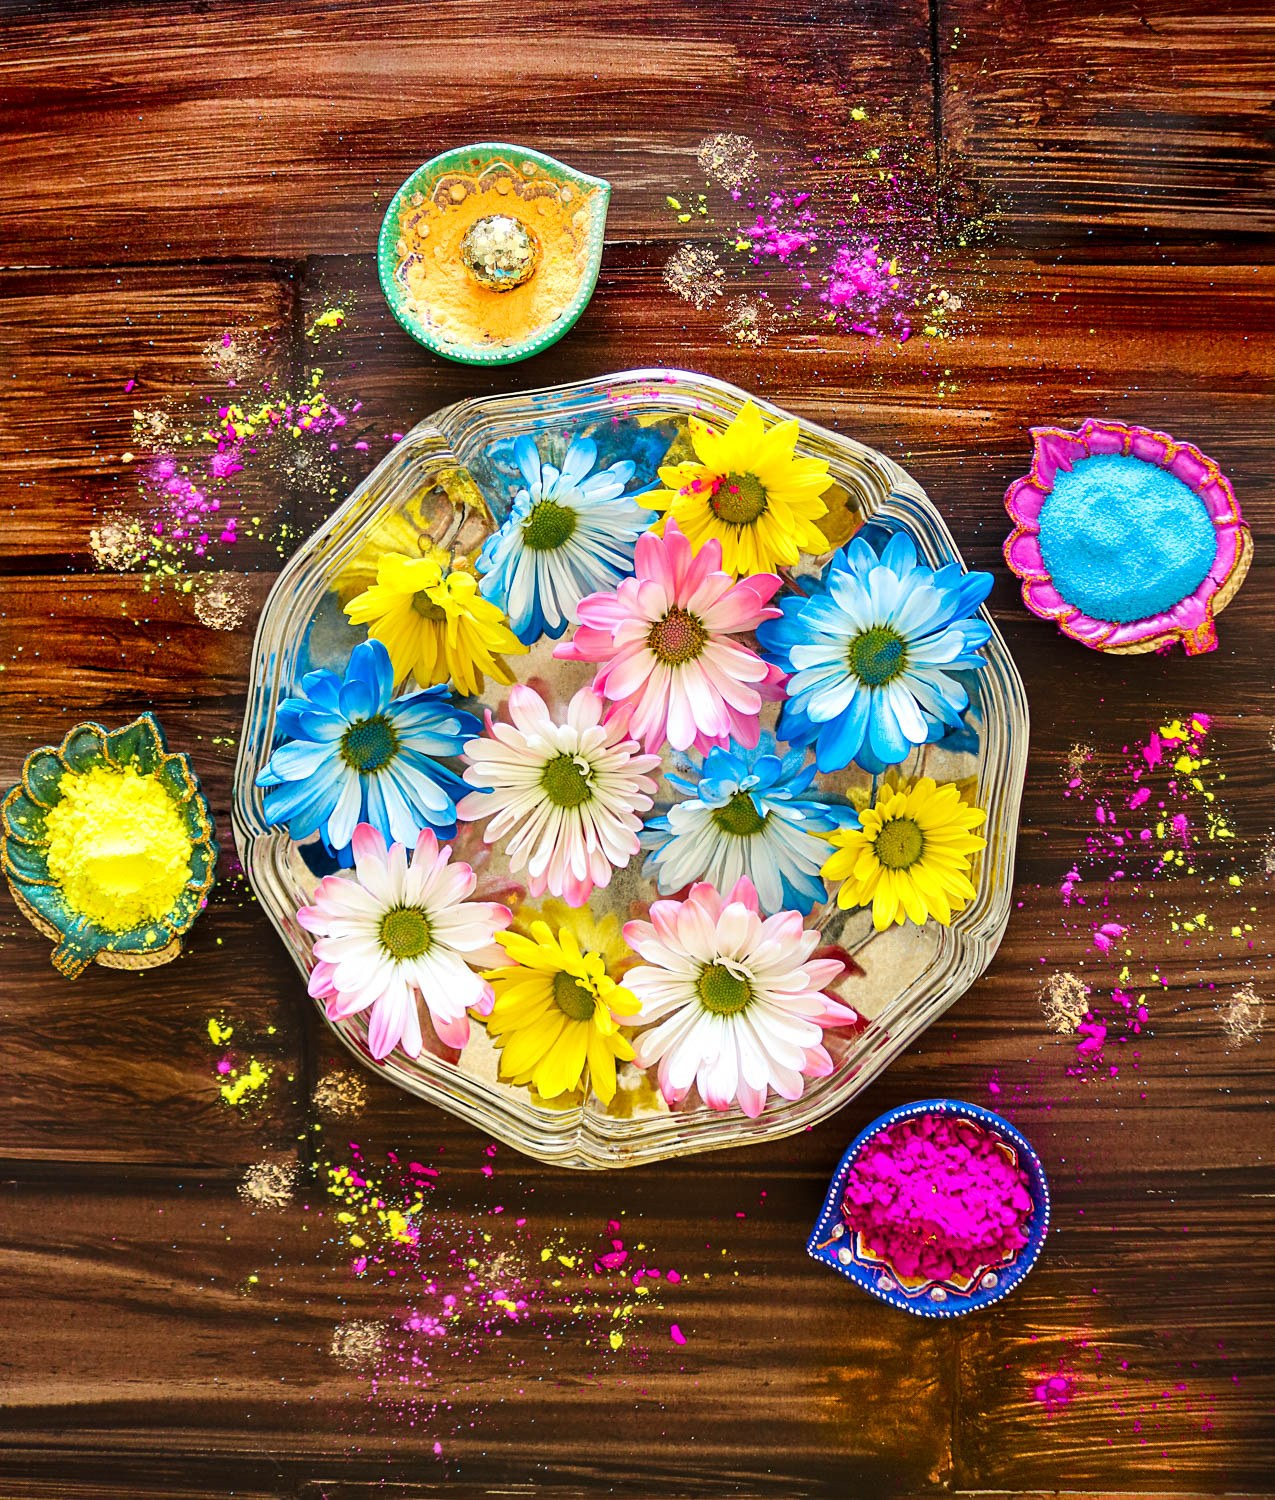 Happy Holi to All - Ruchiskitchen